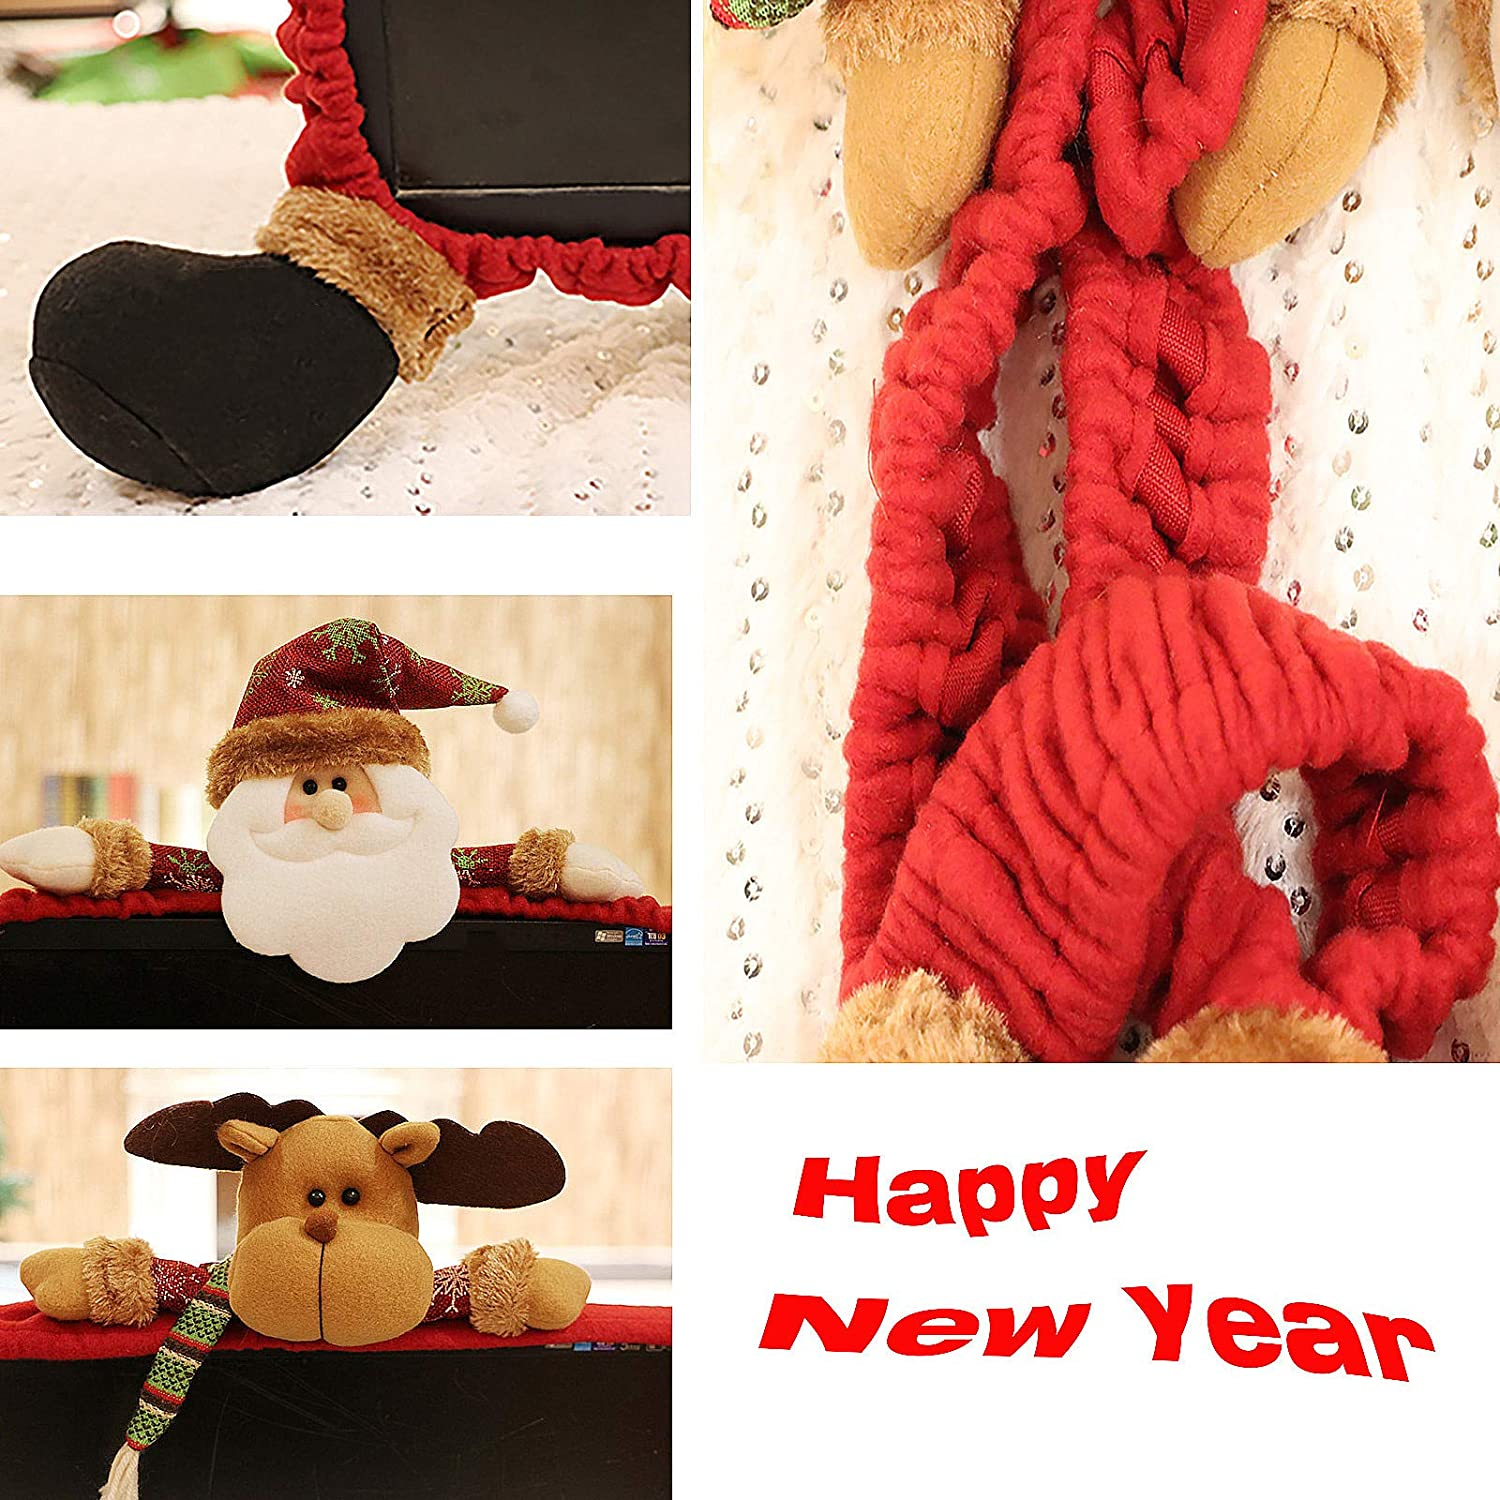 Elastic Computer Cover Christmas Decorations for Home Office Decor and New Year Gift Ideas Santa Claus /… Computer Monitor Cover